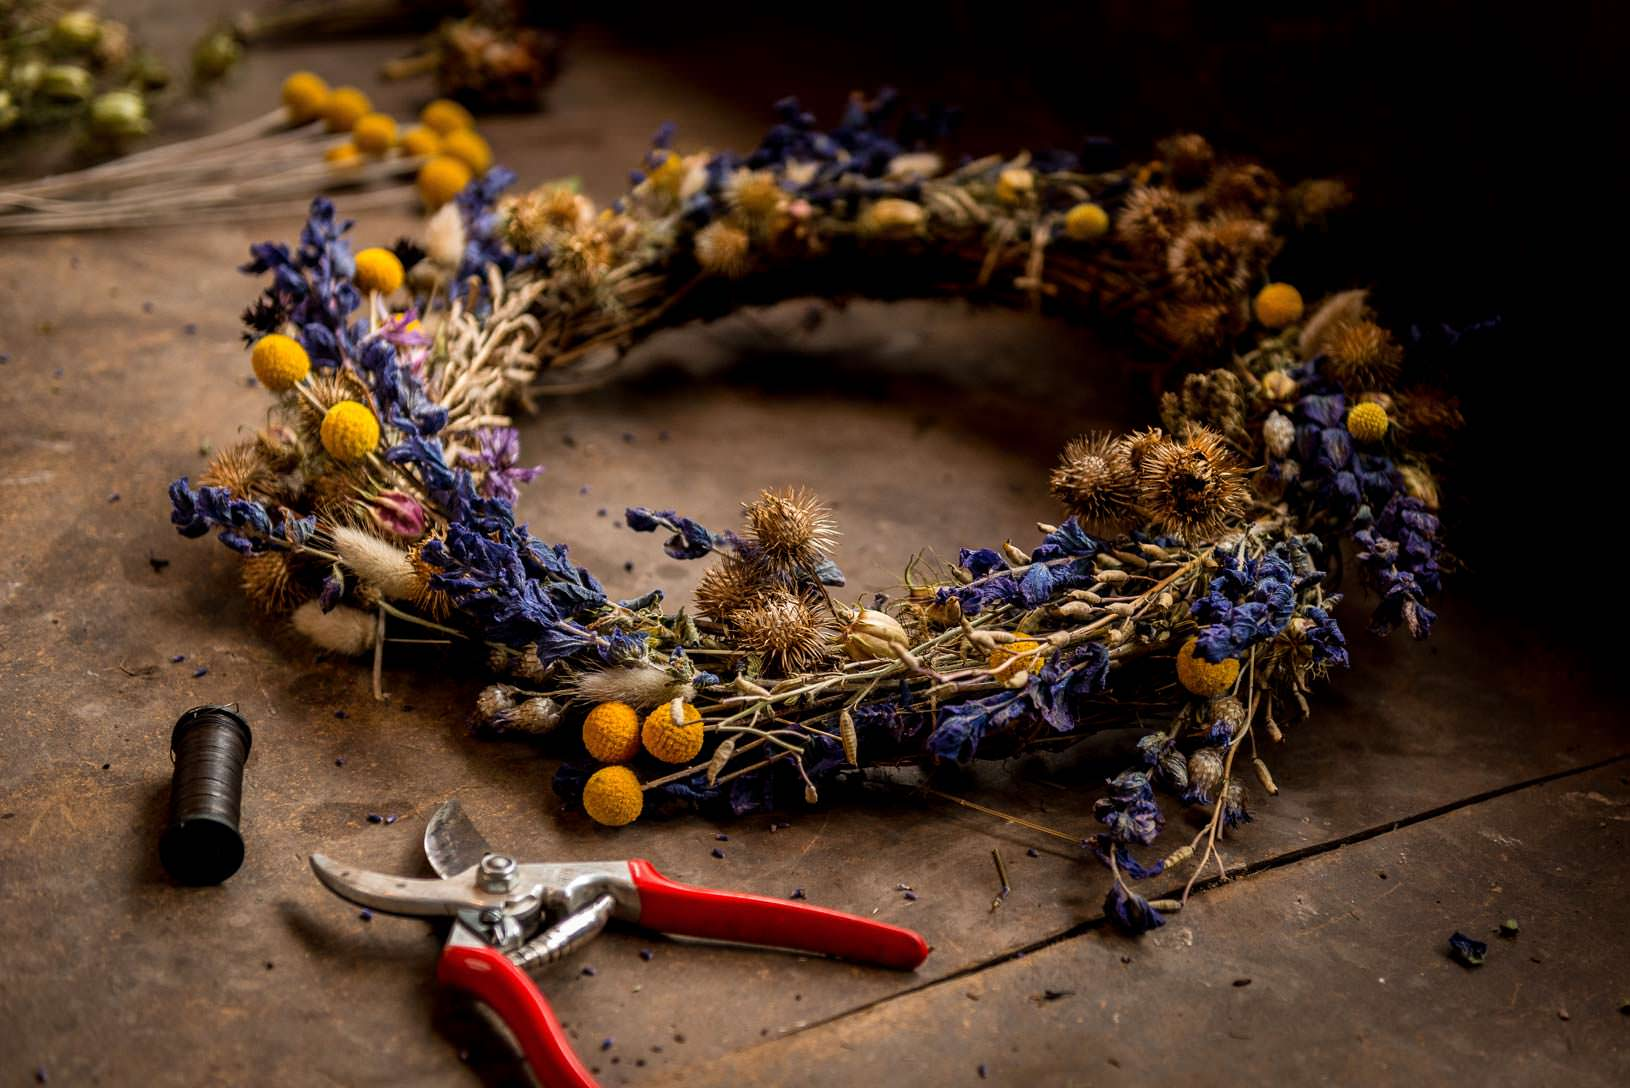 How to make dried flower wreaths